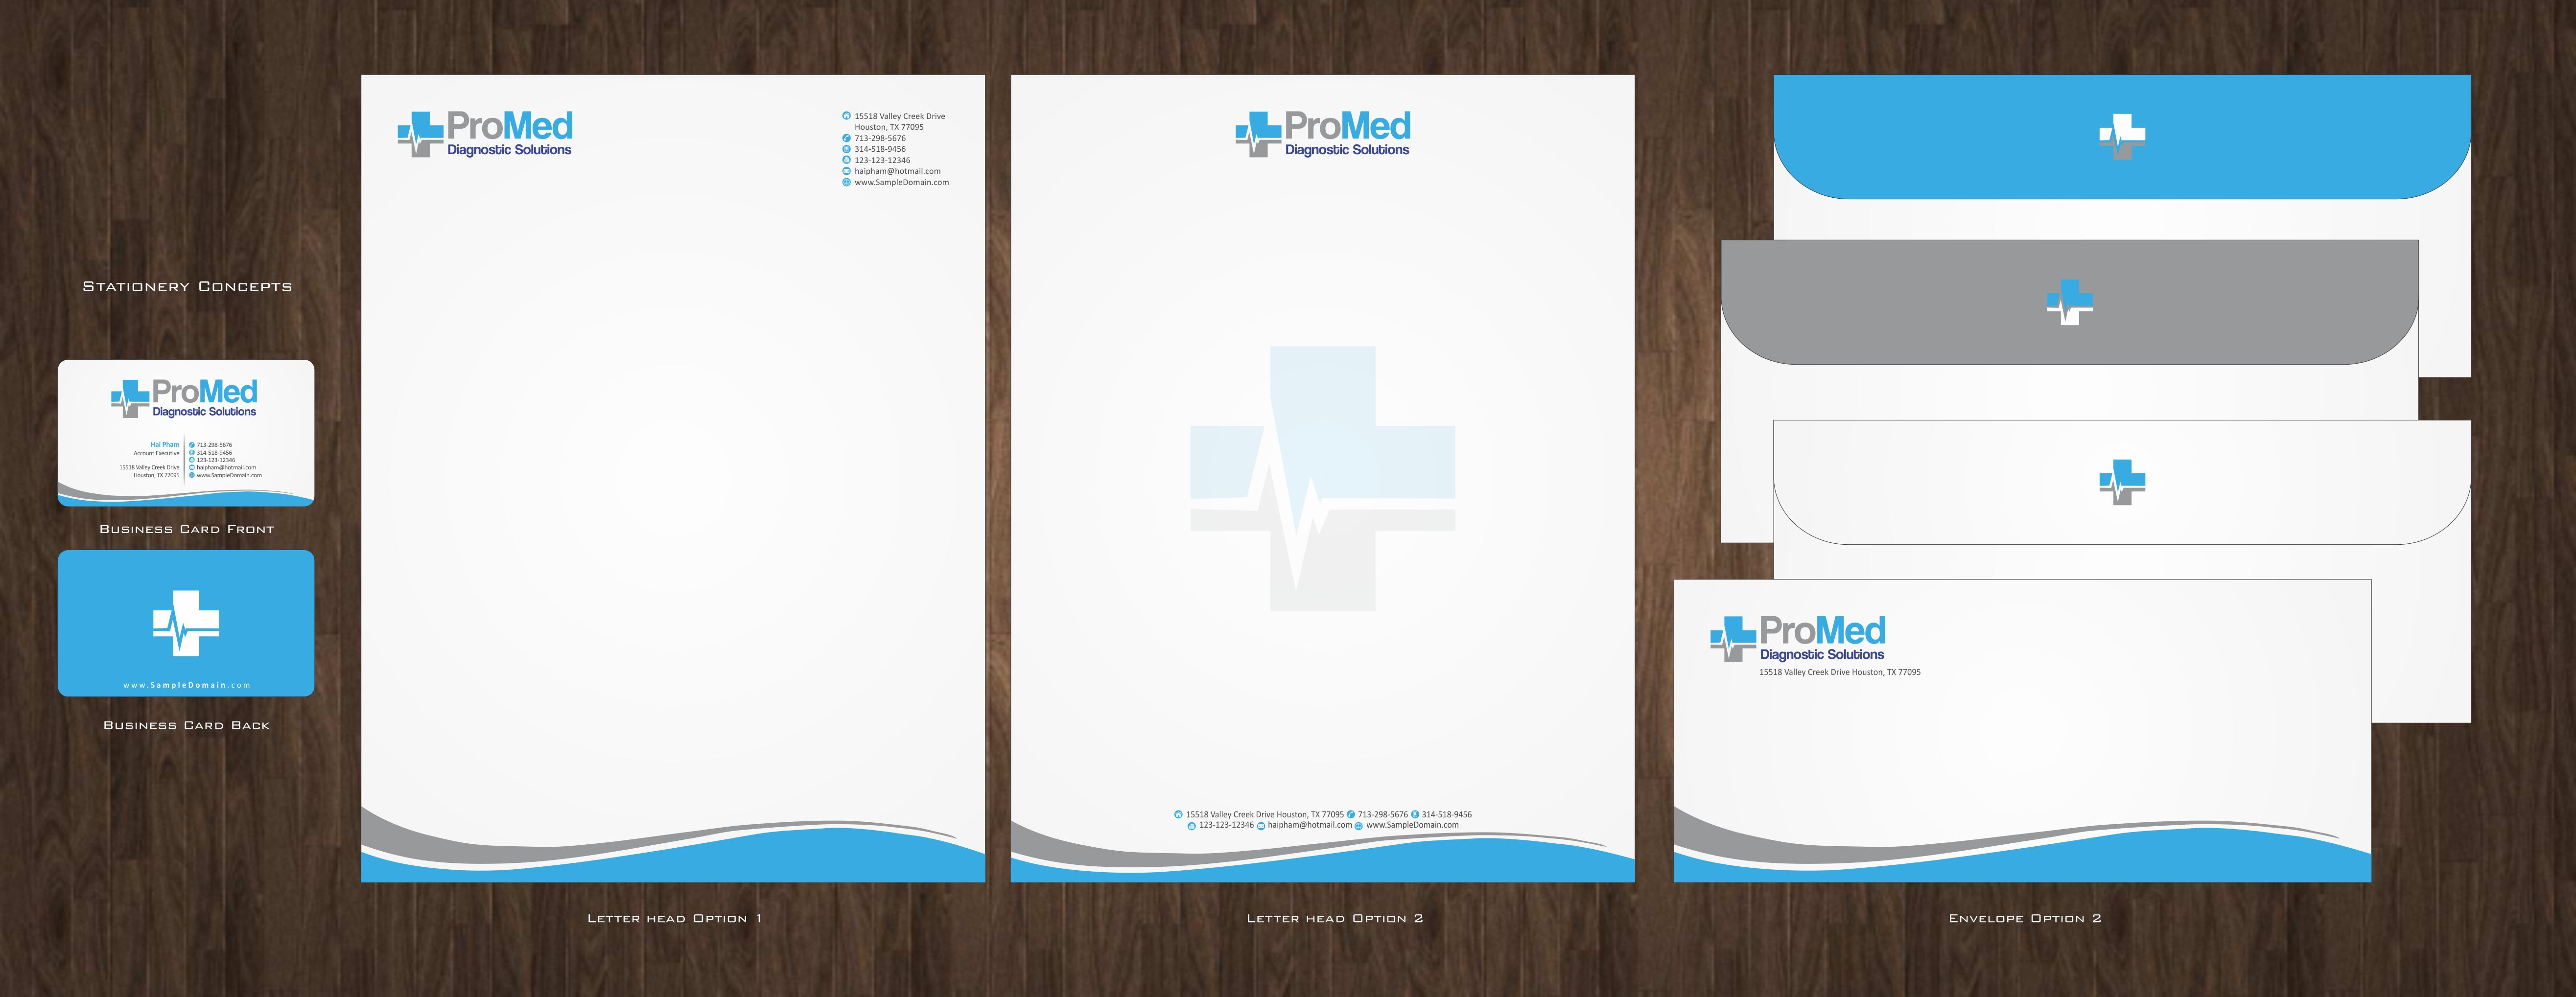 Stationary for ultrasound imaging company - Health